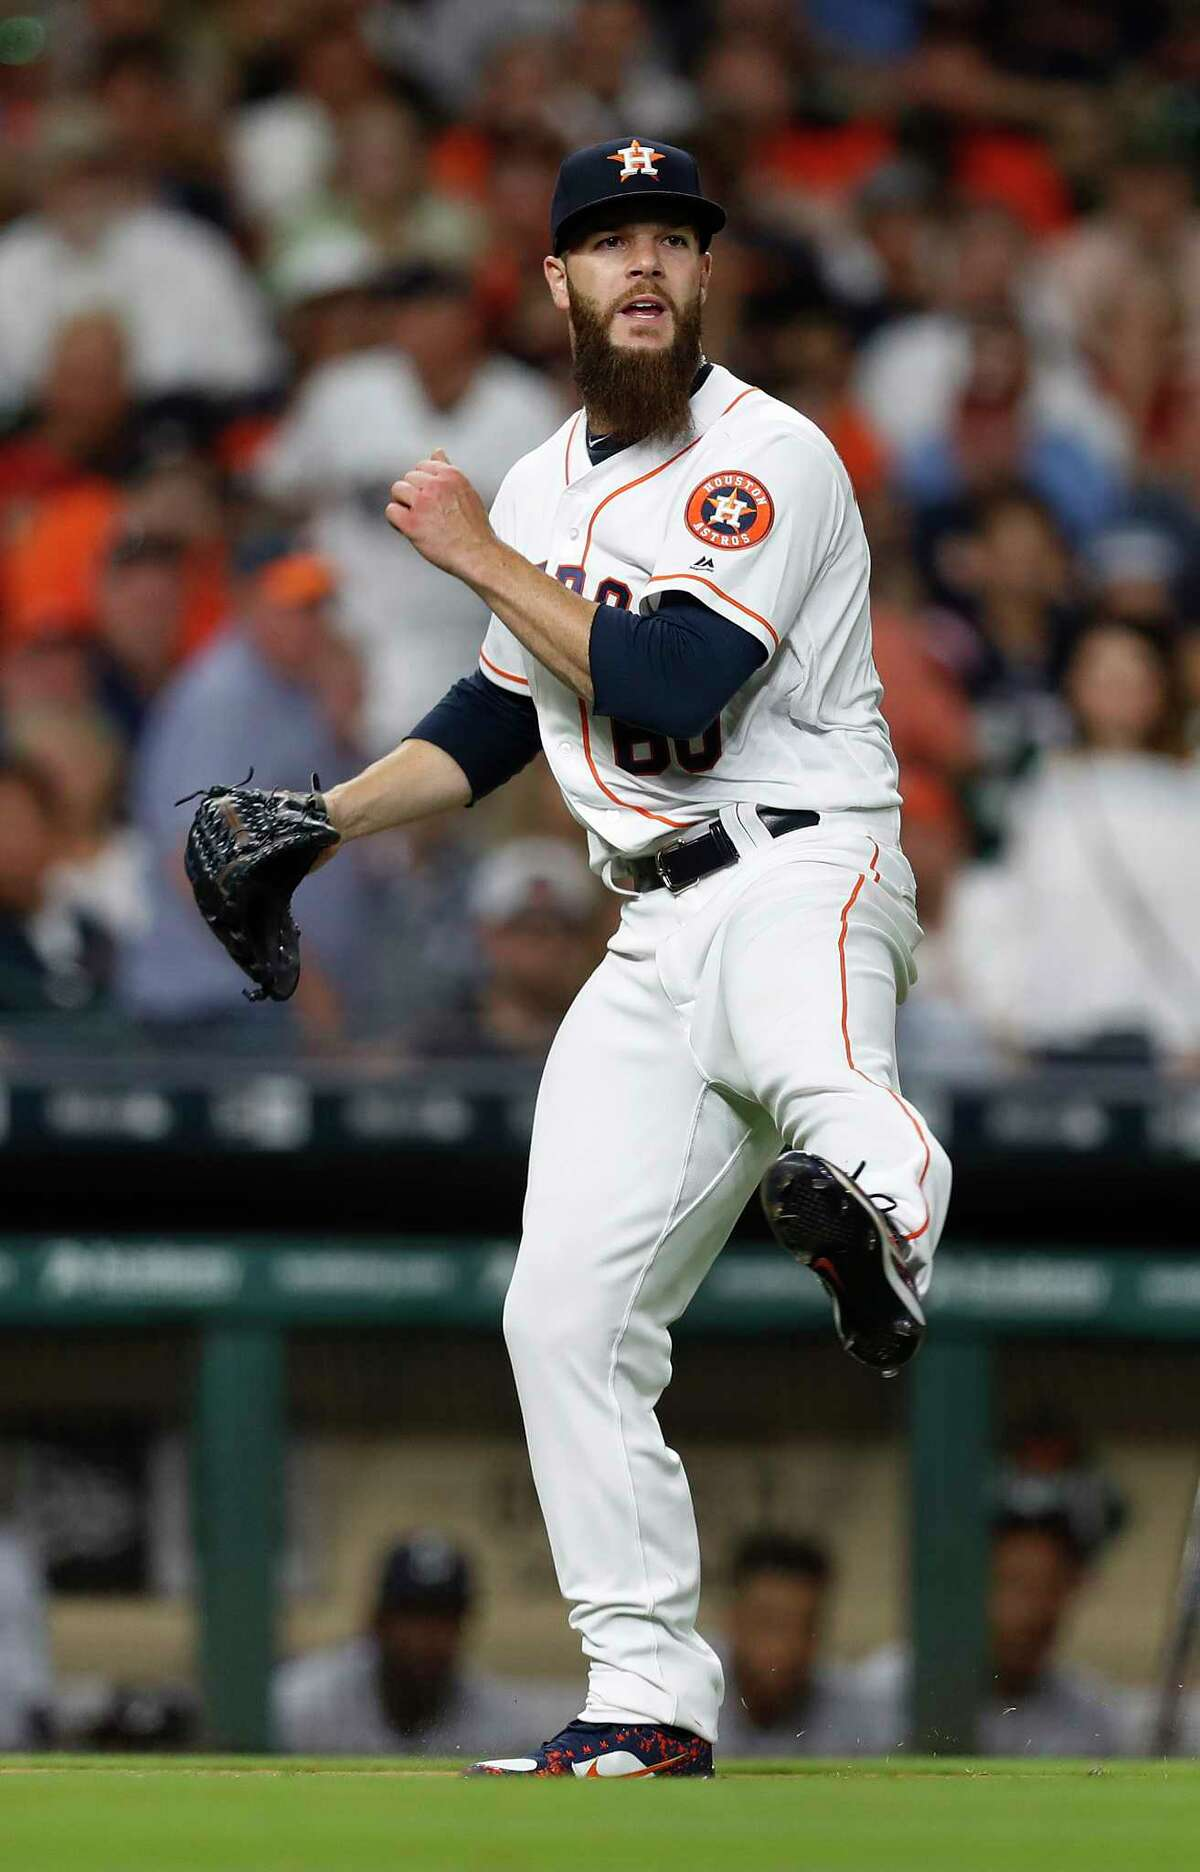 The Astros' Dallas Keuchel had a leg up on the Mariners from the start in Monday's season opener en route to winning his third season opener in three years.